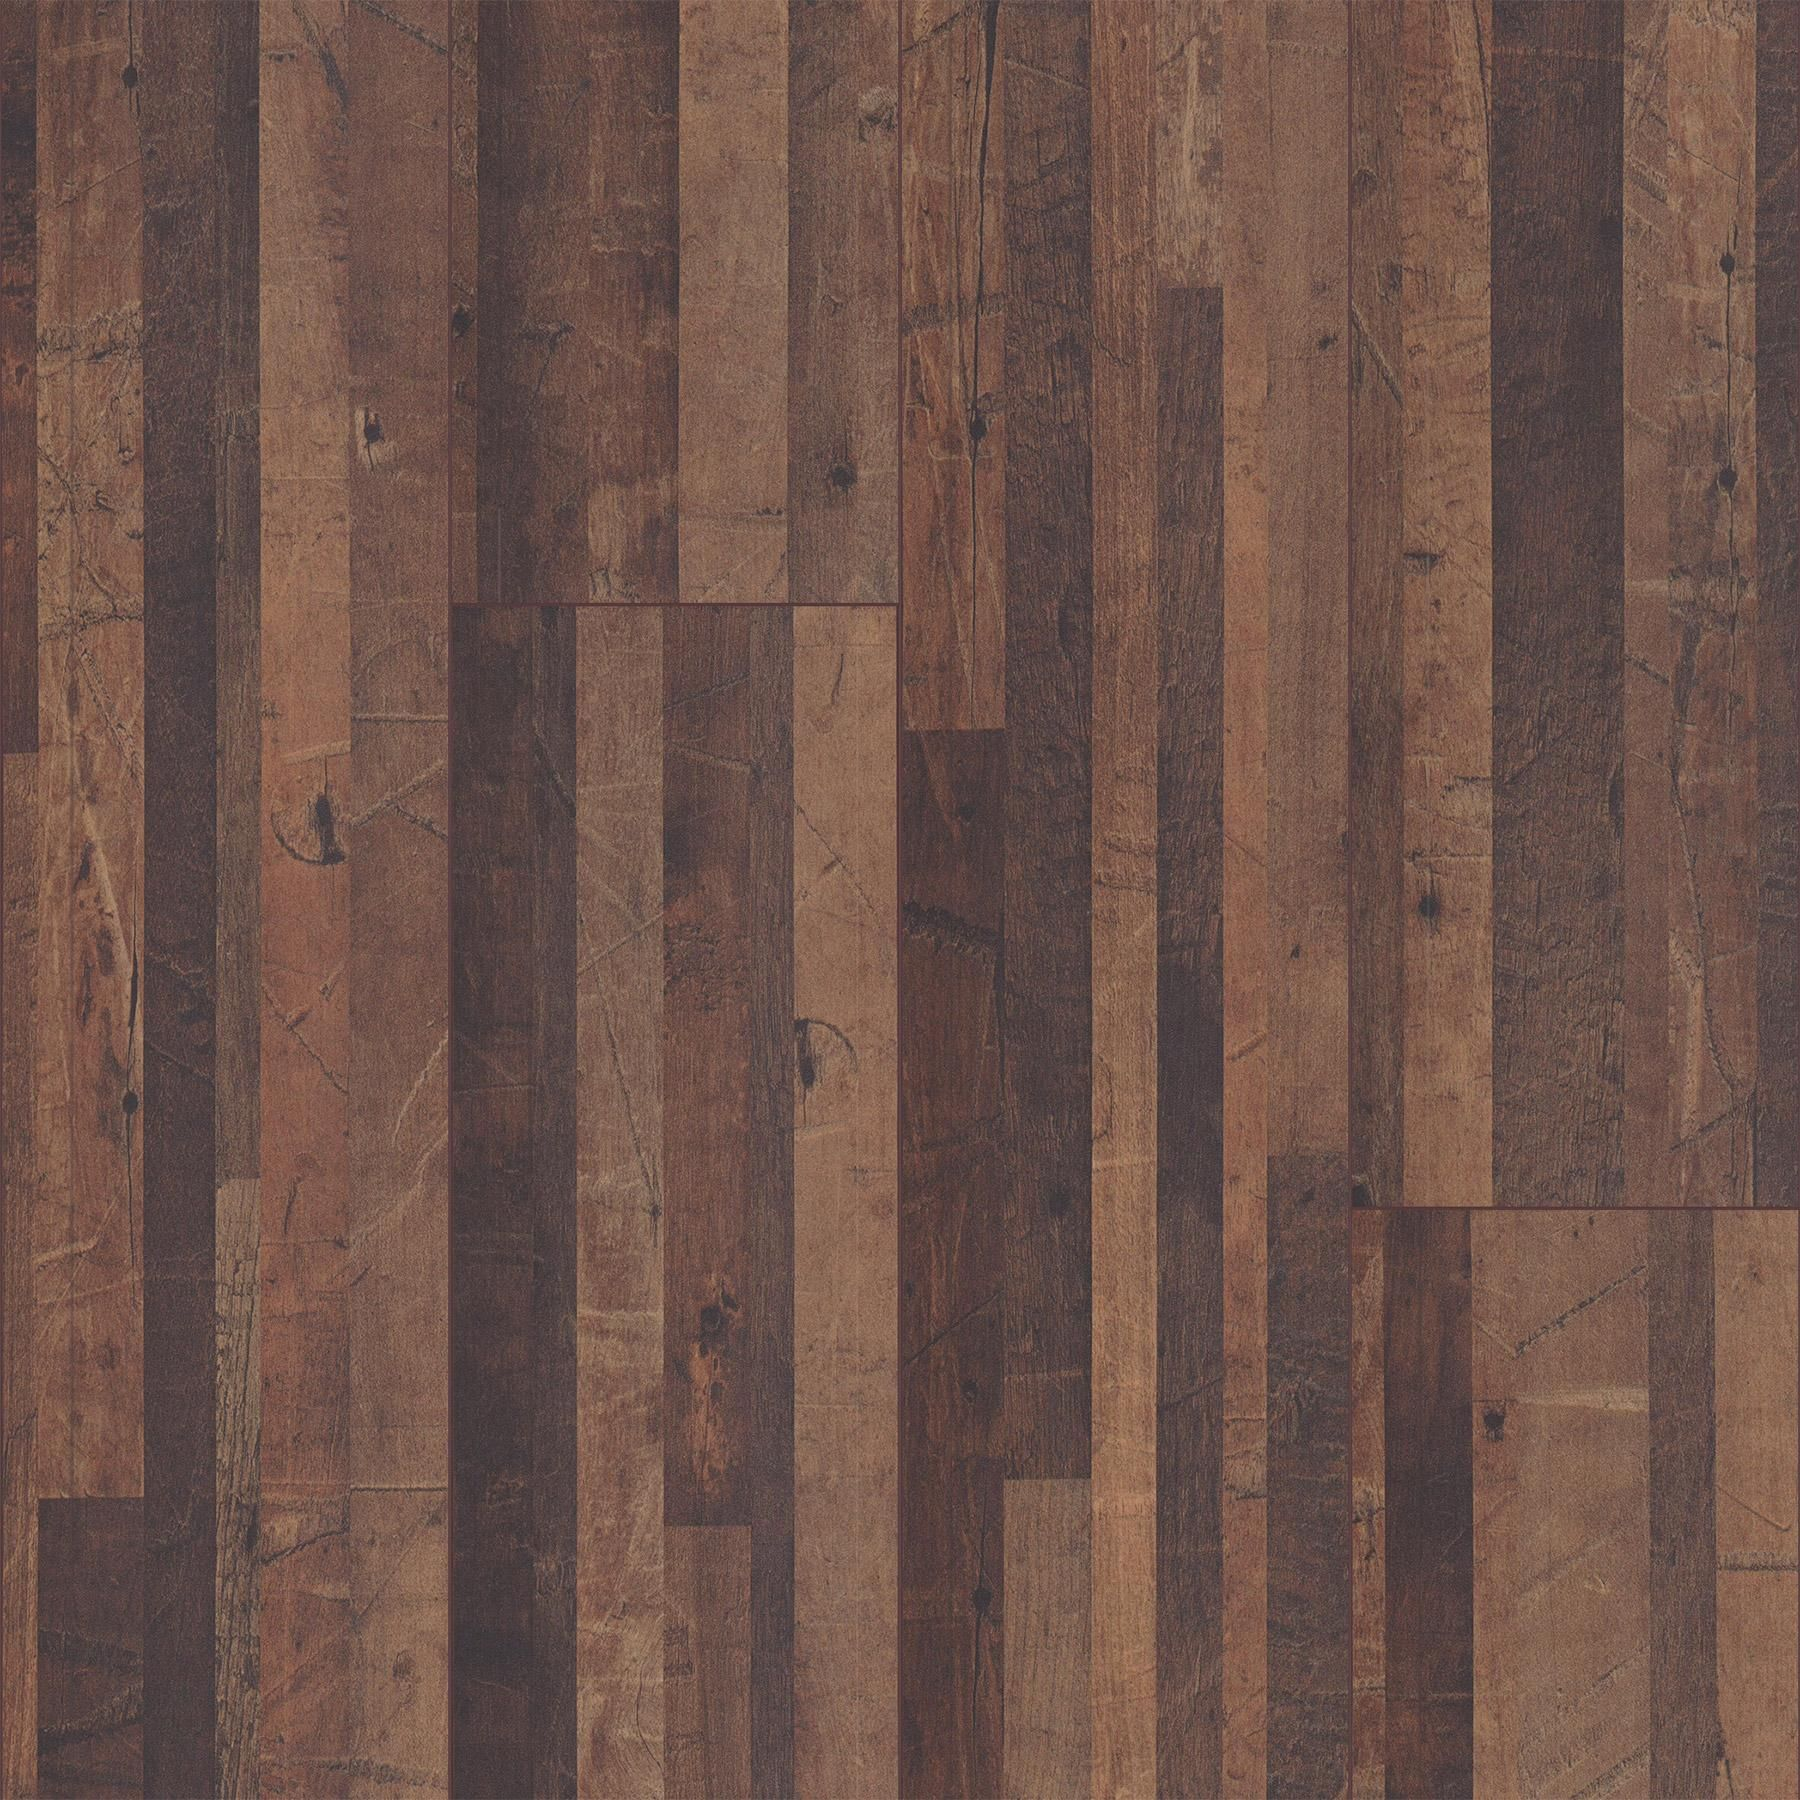 Mohawk havermill antique leather maple laminate flooring